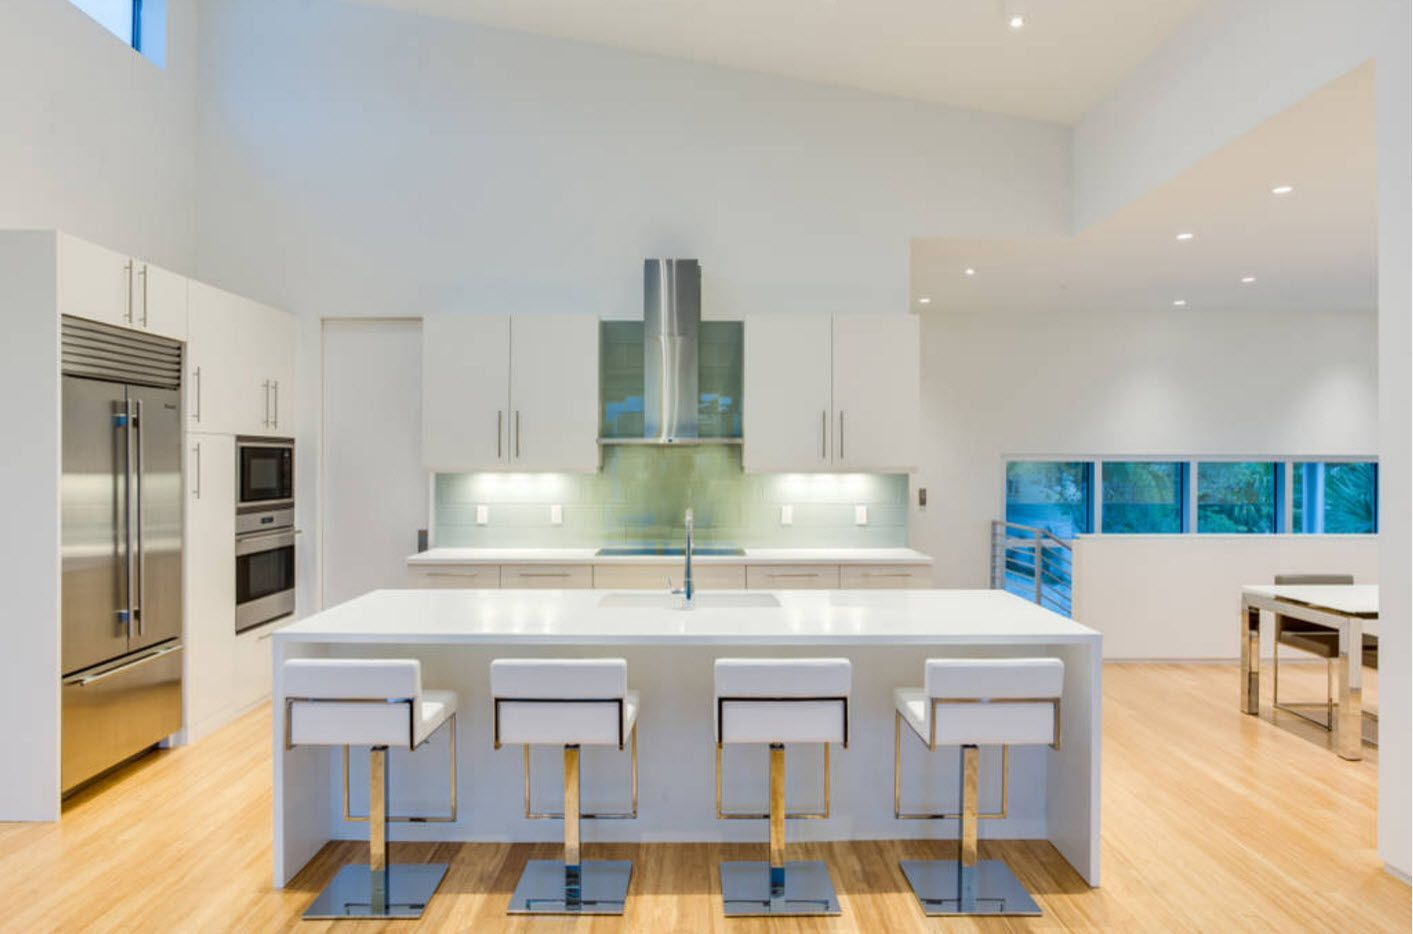 Unusual mUnusual modern and futuristic kitchen interior with the metal framed chairs at the tableodern and futuristic kitchen interior with the metal framed chairs at the dining zone